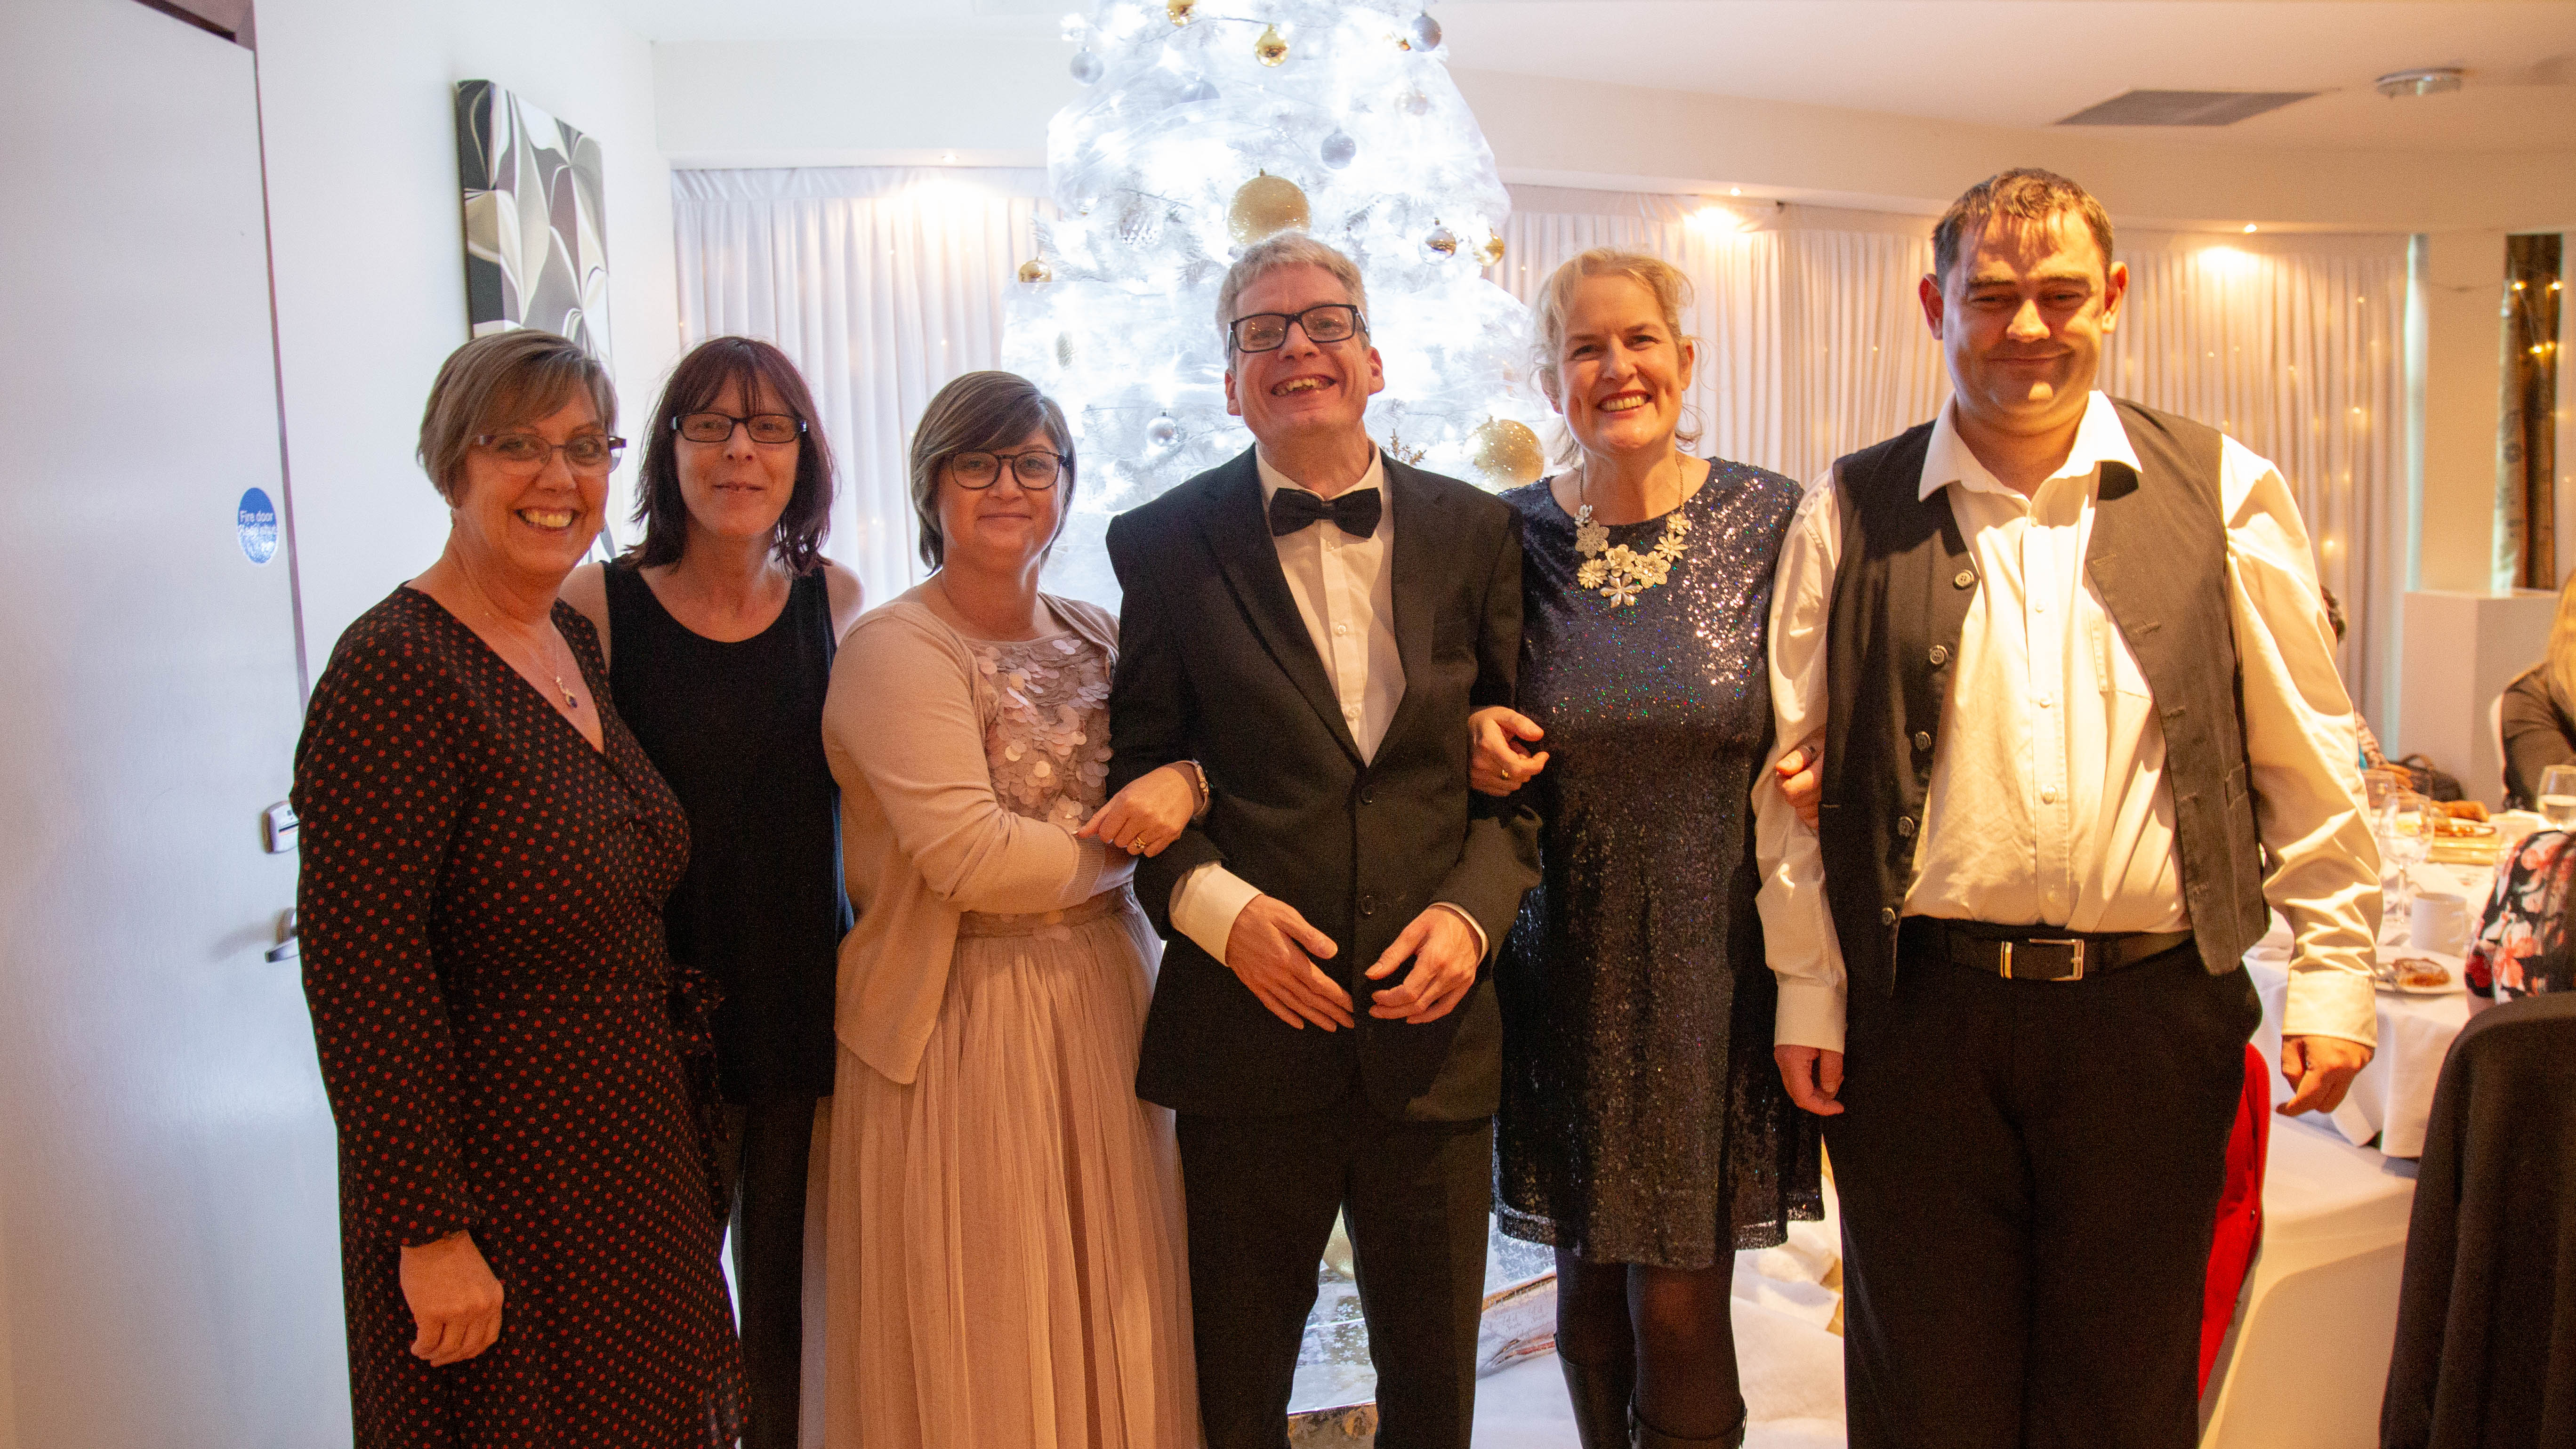 Creative Support celebrates another year of amazing achievements